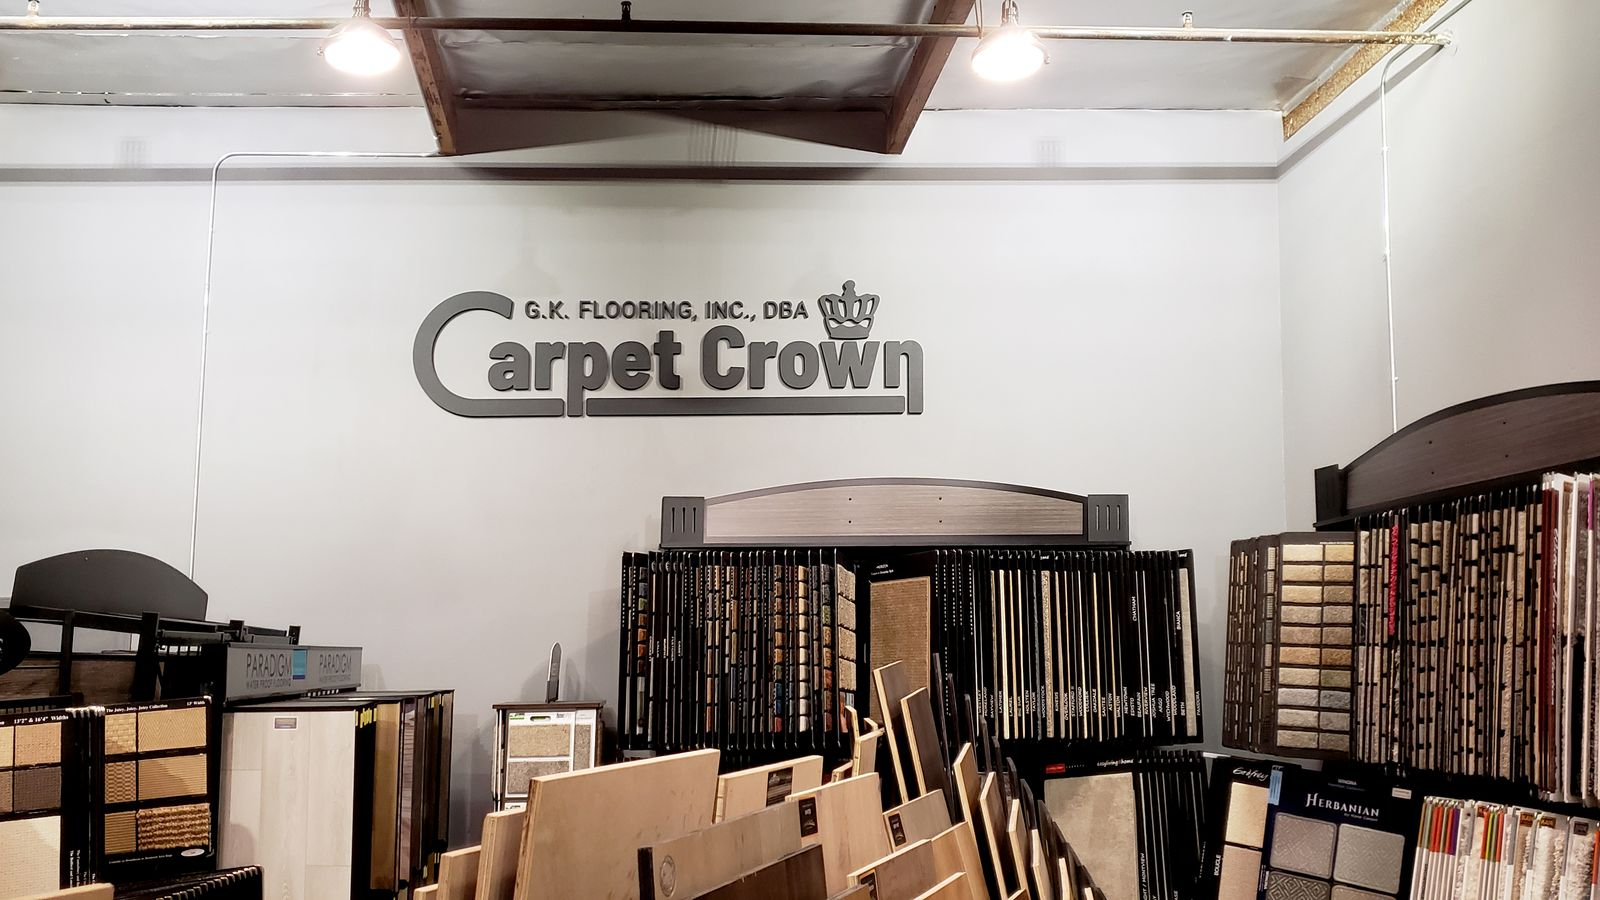 Carpet Crown 3d plastic letters and logo sign made of PVC for store interior branding